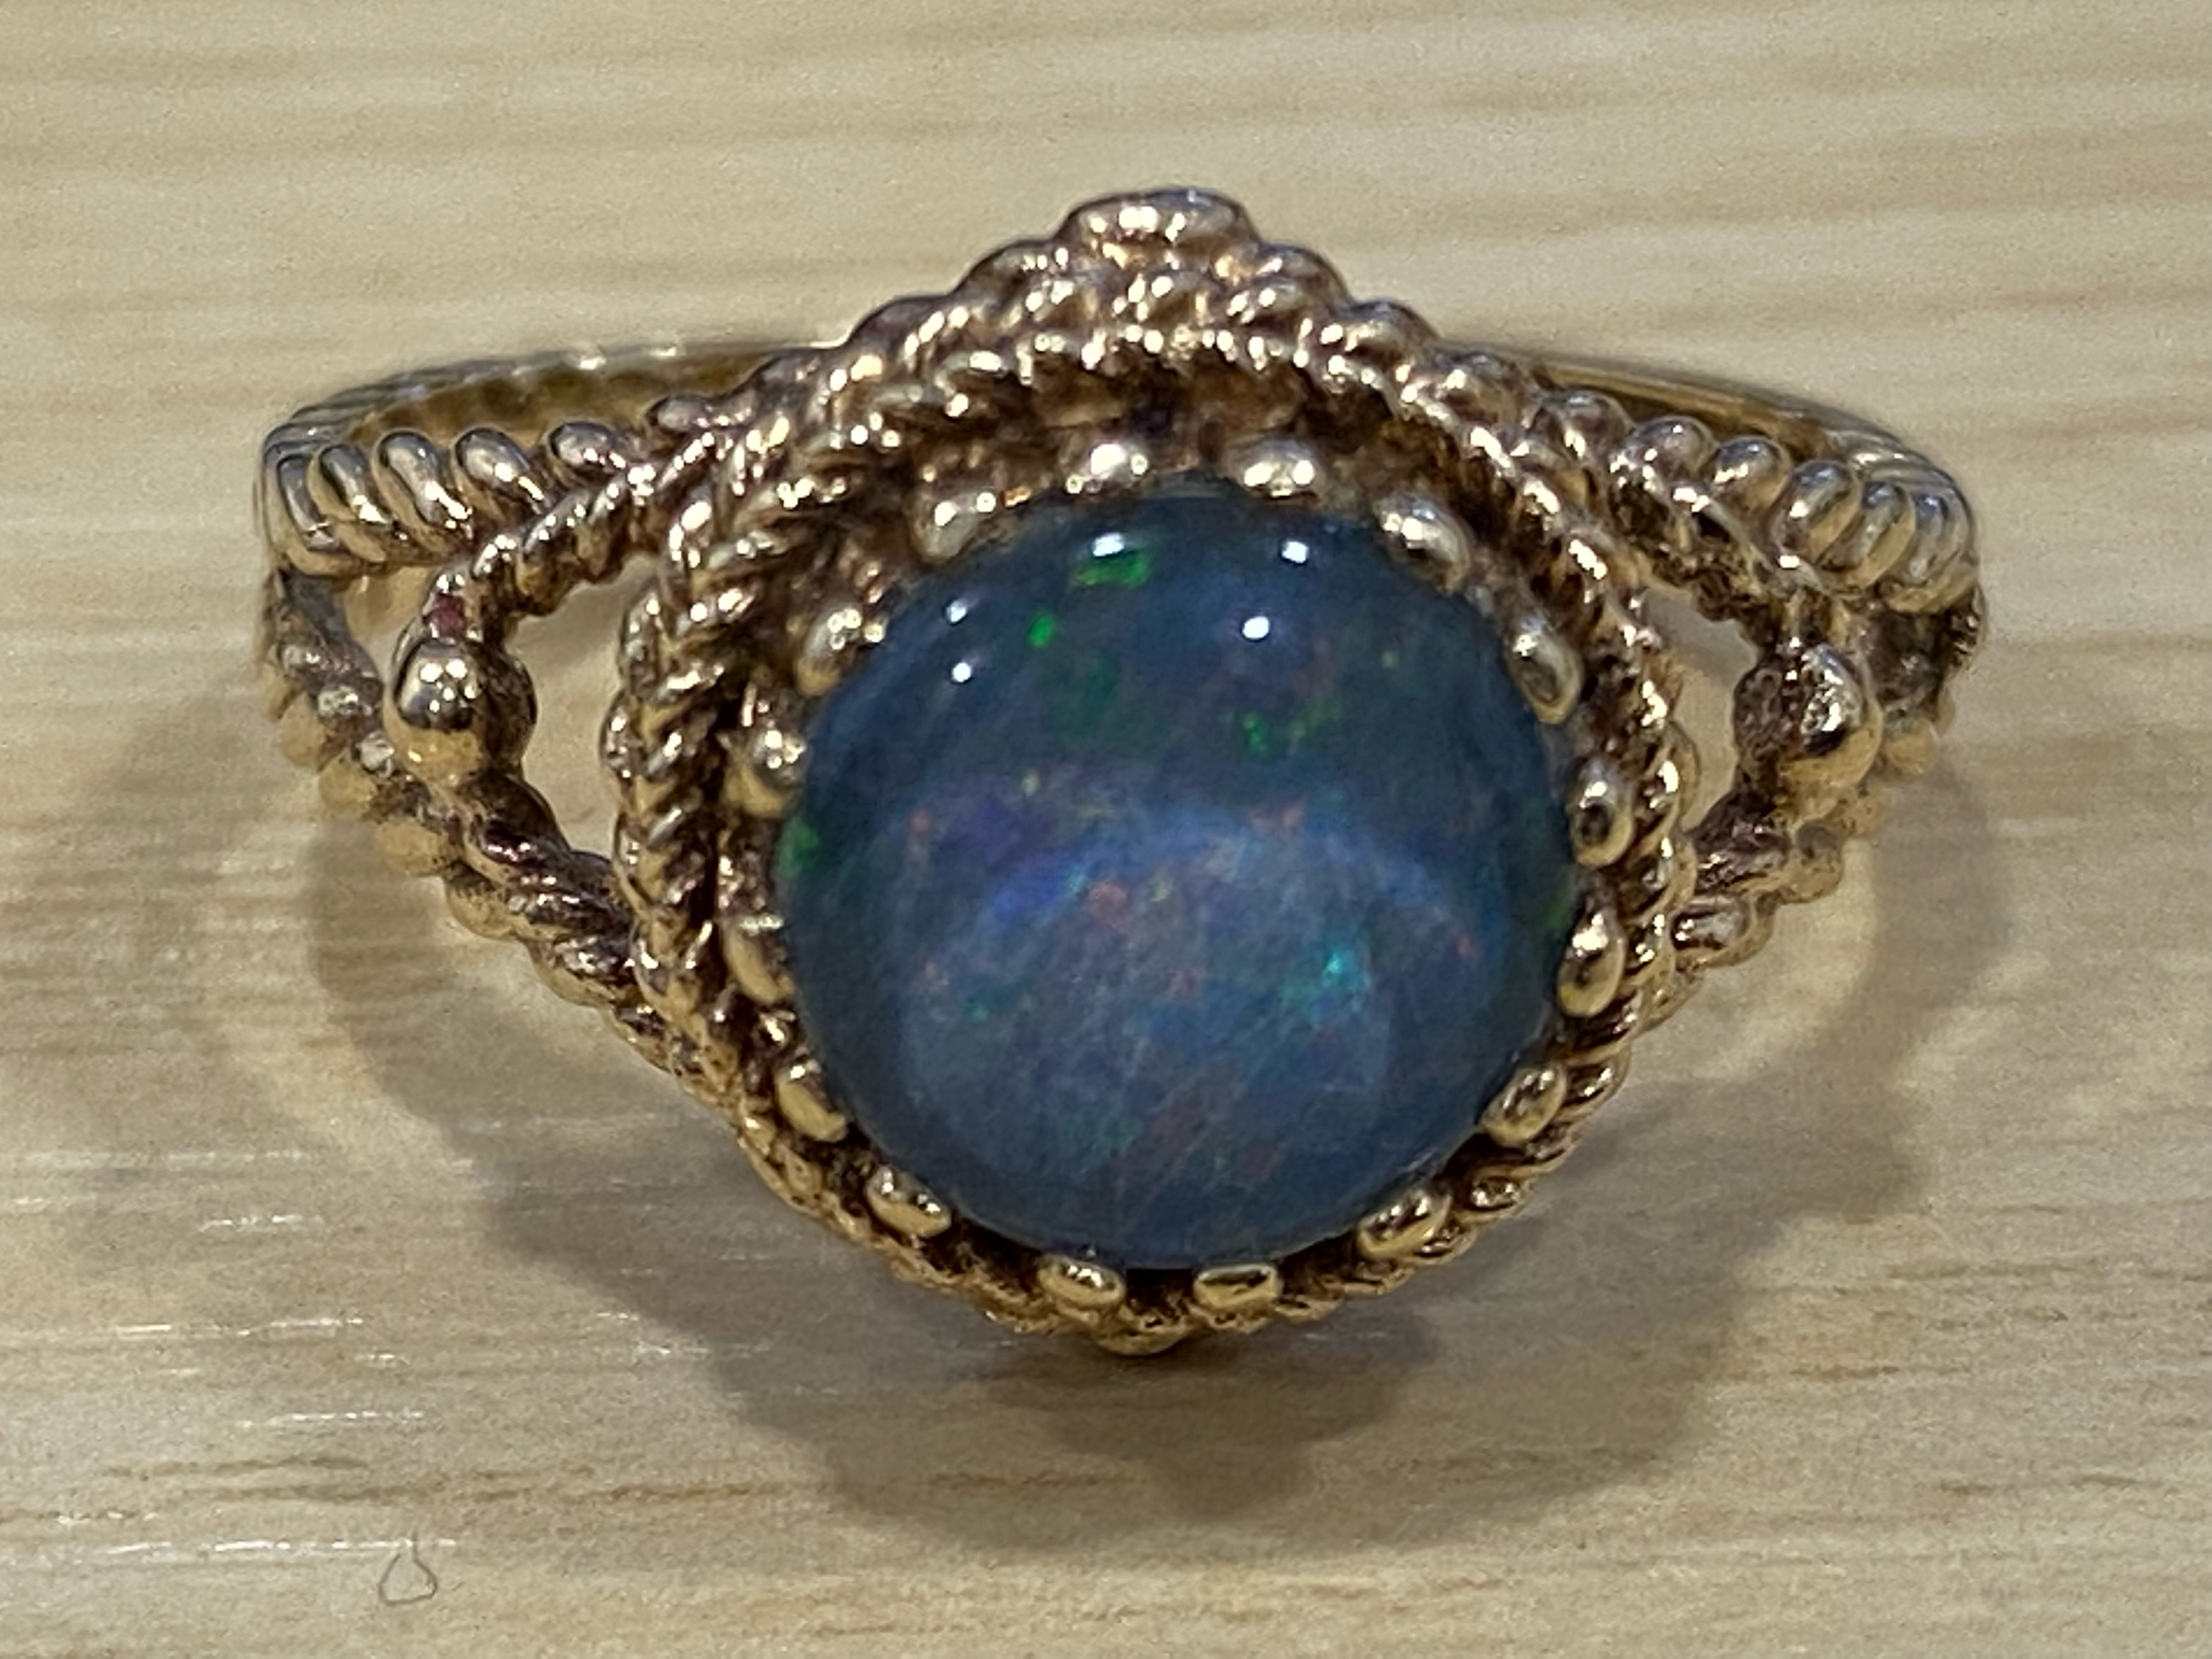 A 9ct yellow gold and opal ring, in claw setting, 3.2g gross, size L.